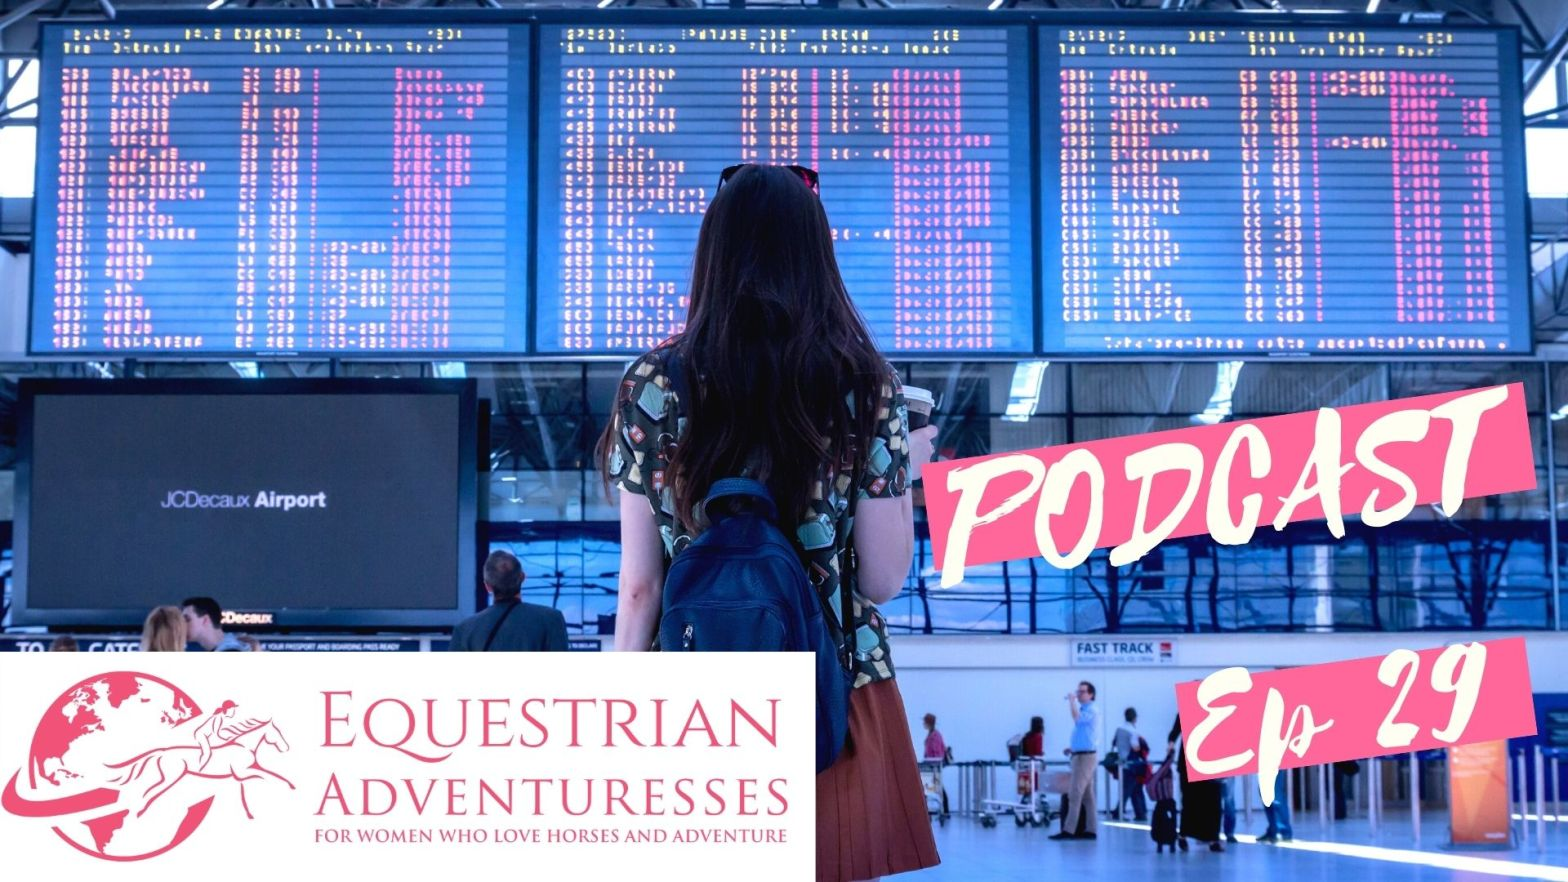 Equestrian Adventuresses Travel and Horse Podcast Ep 29 - featured: International Travel during a Pandemic - Covid-19 and What to Expect When You Travel